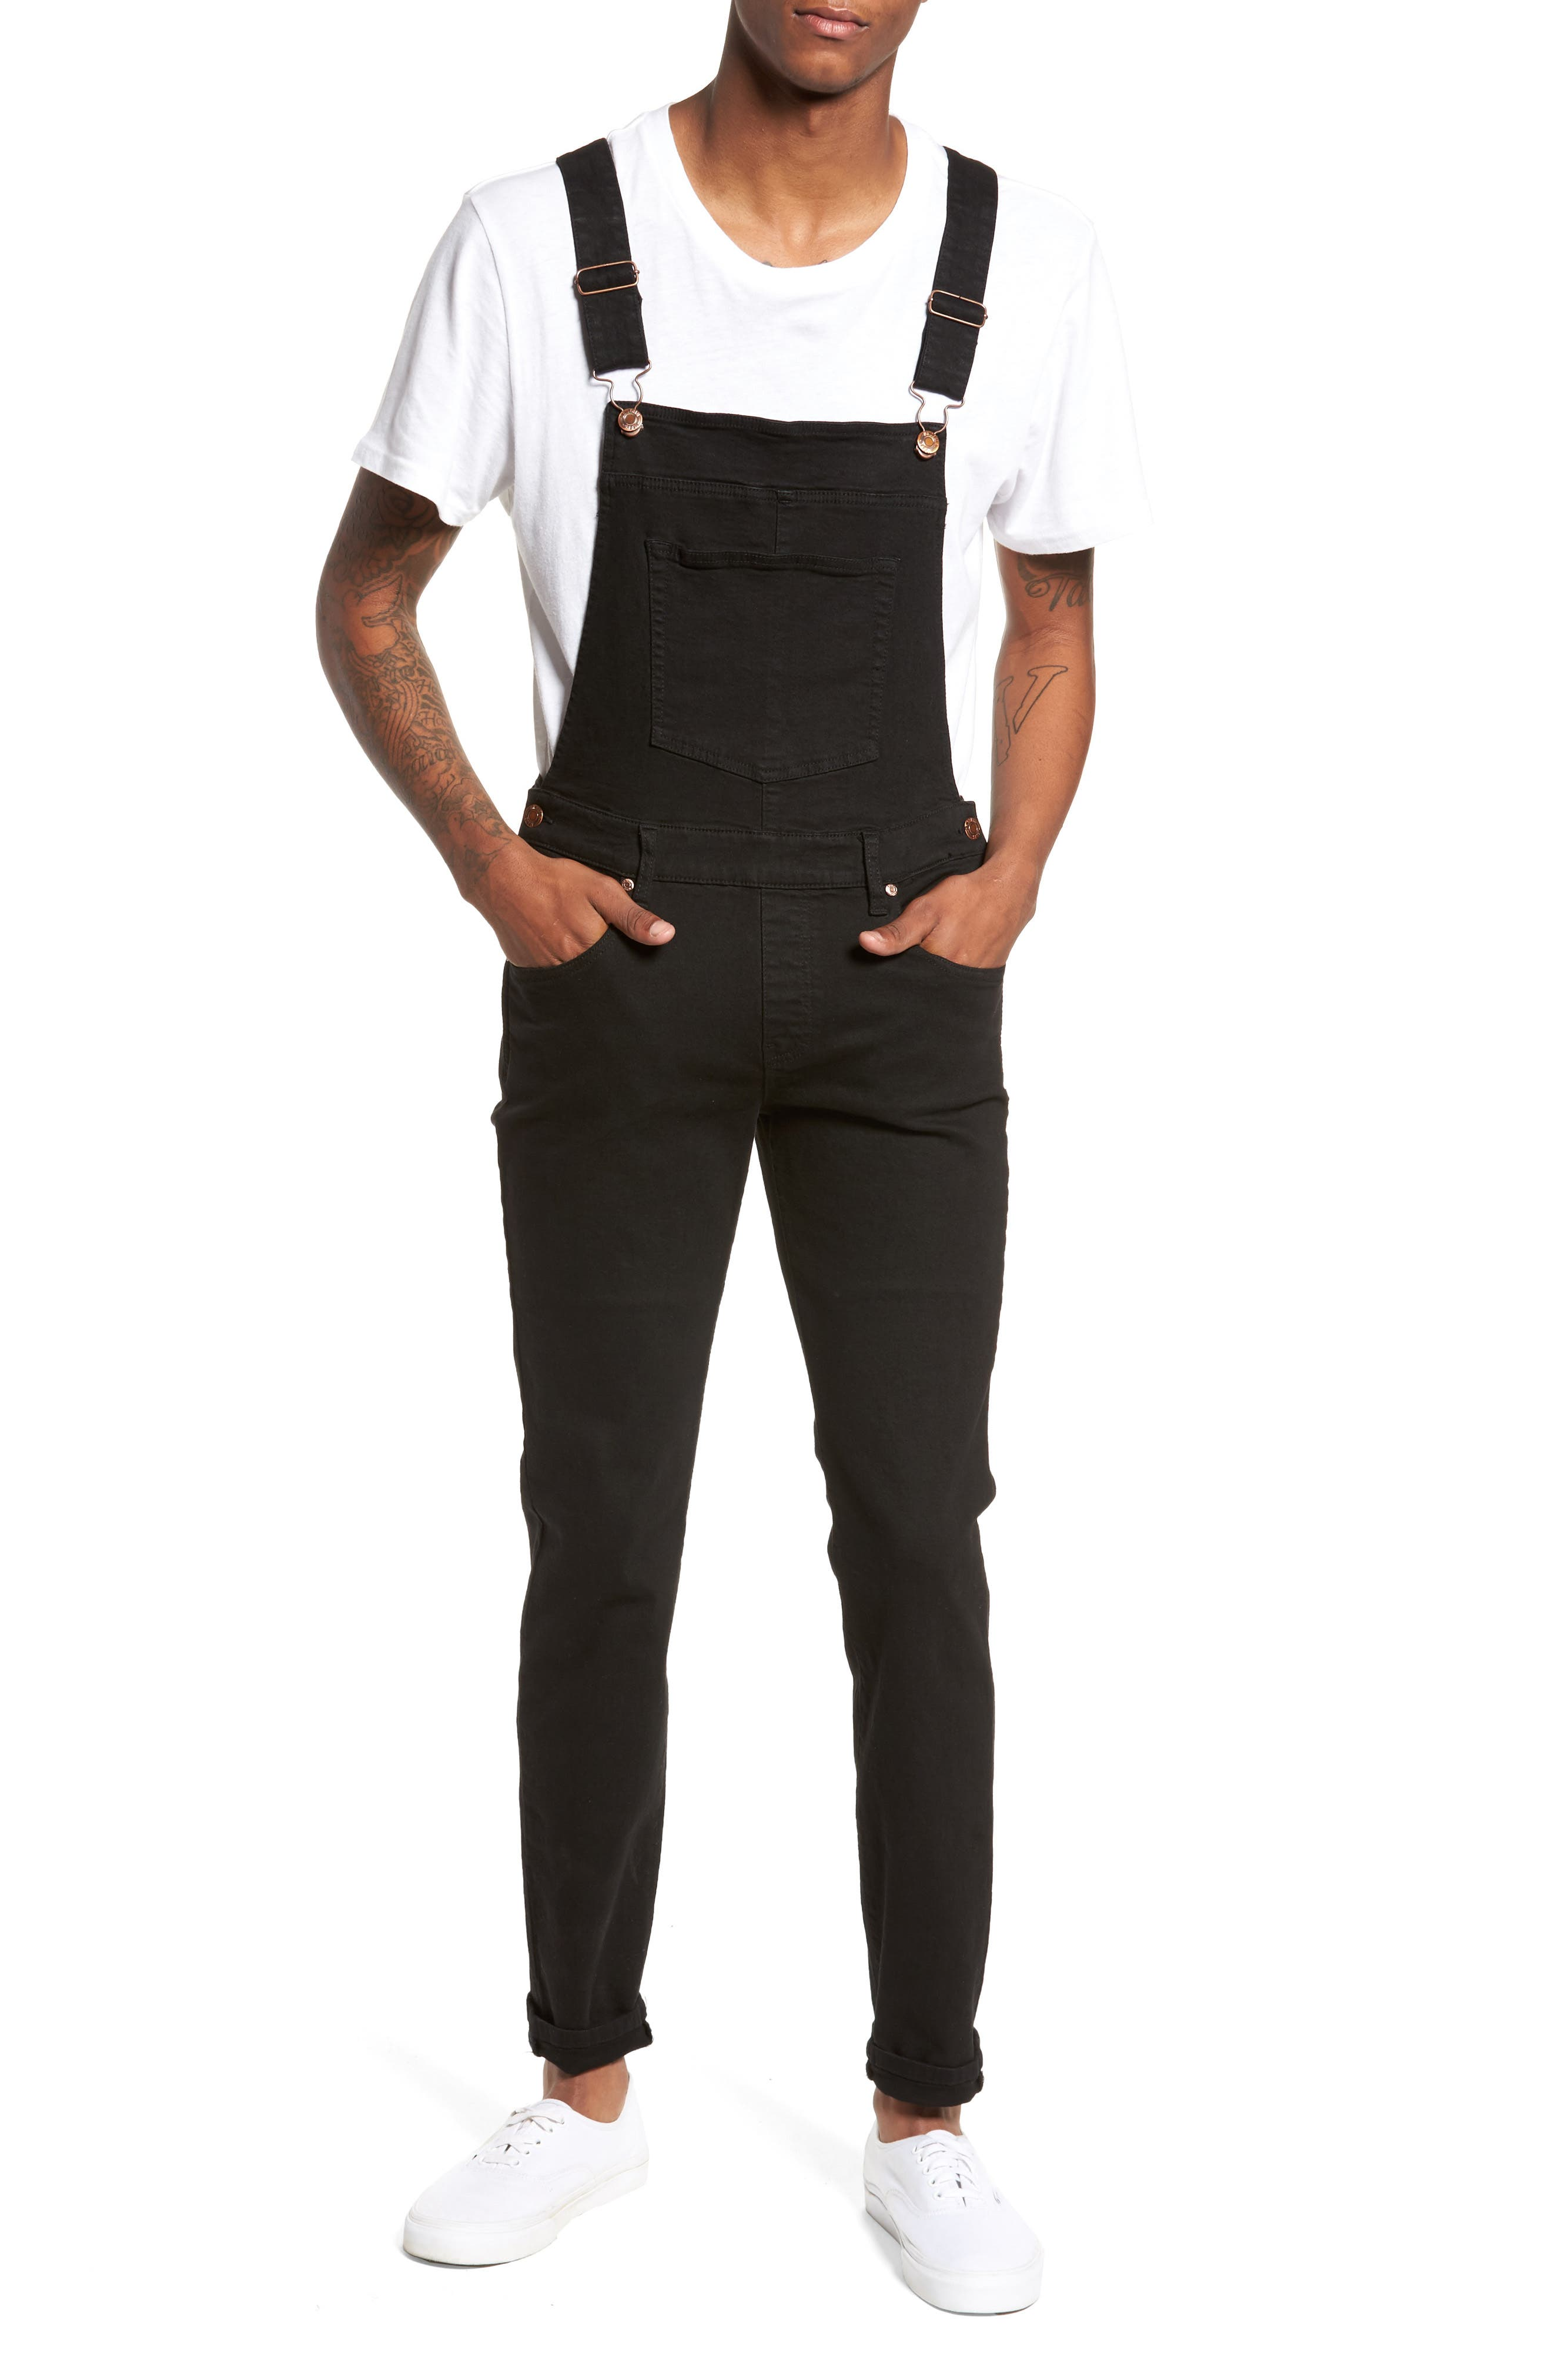 Main Image - Dr. Denim Supply Co. Ira Skinny Fit Overalls